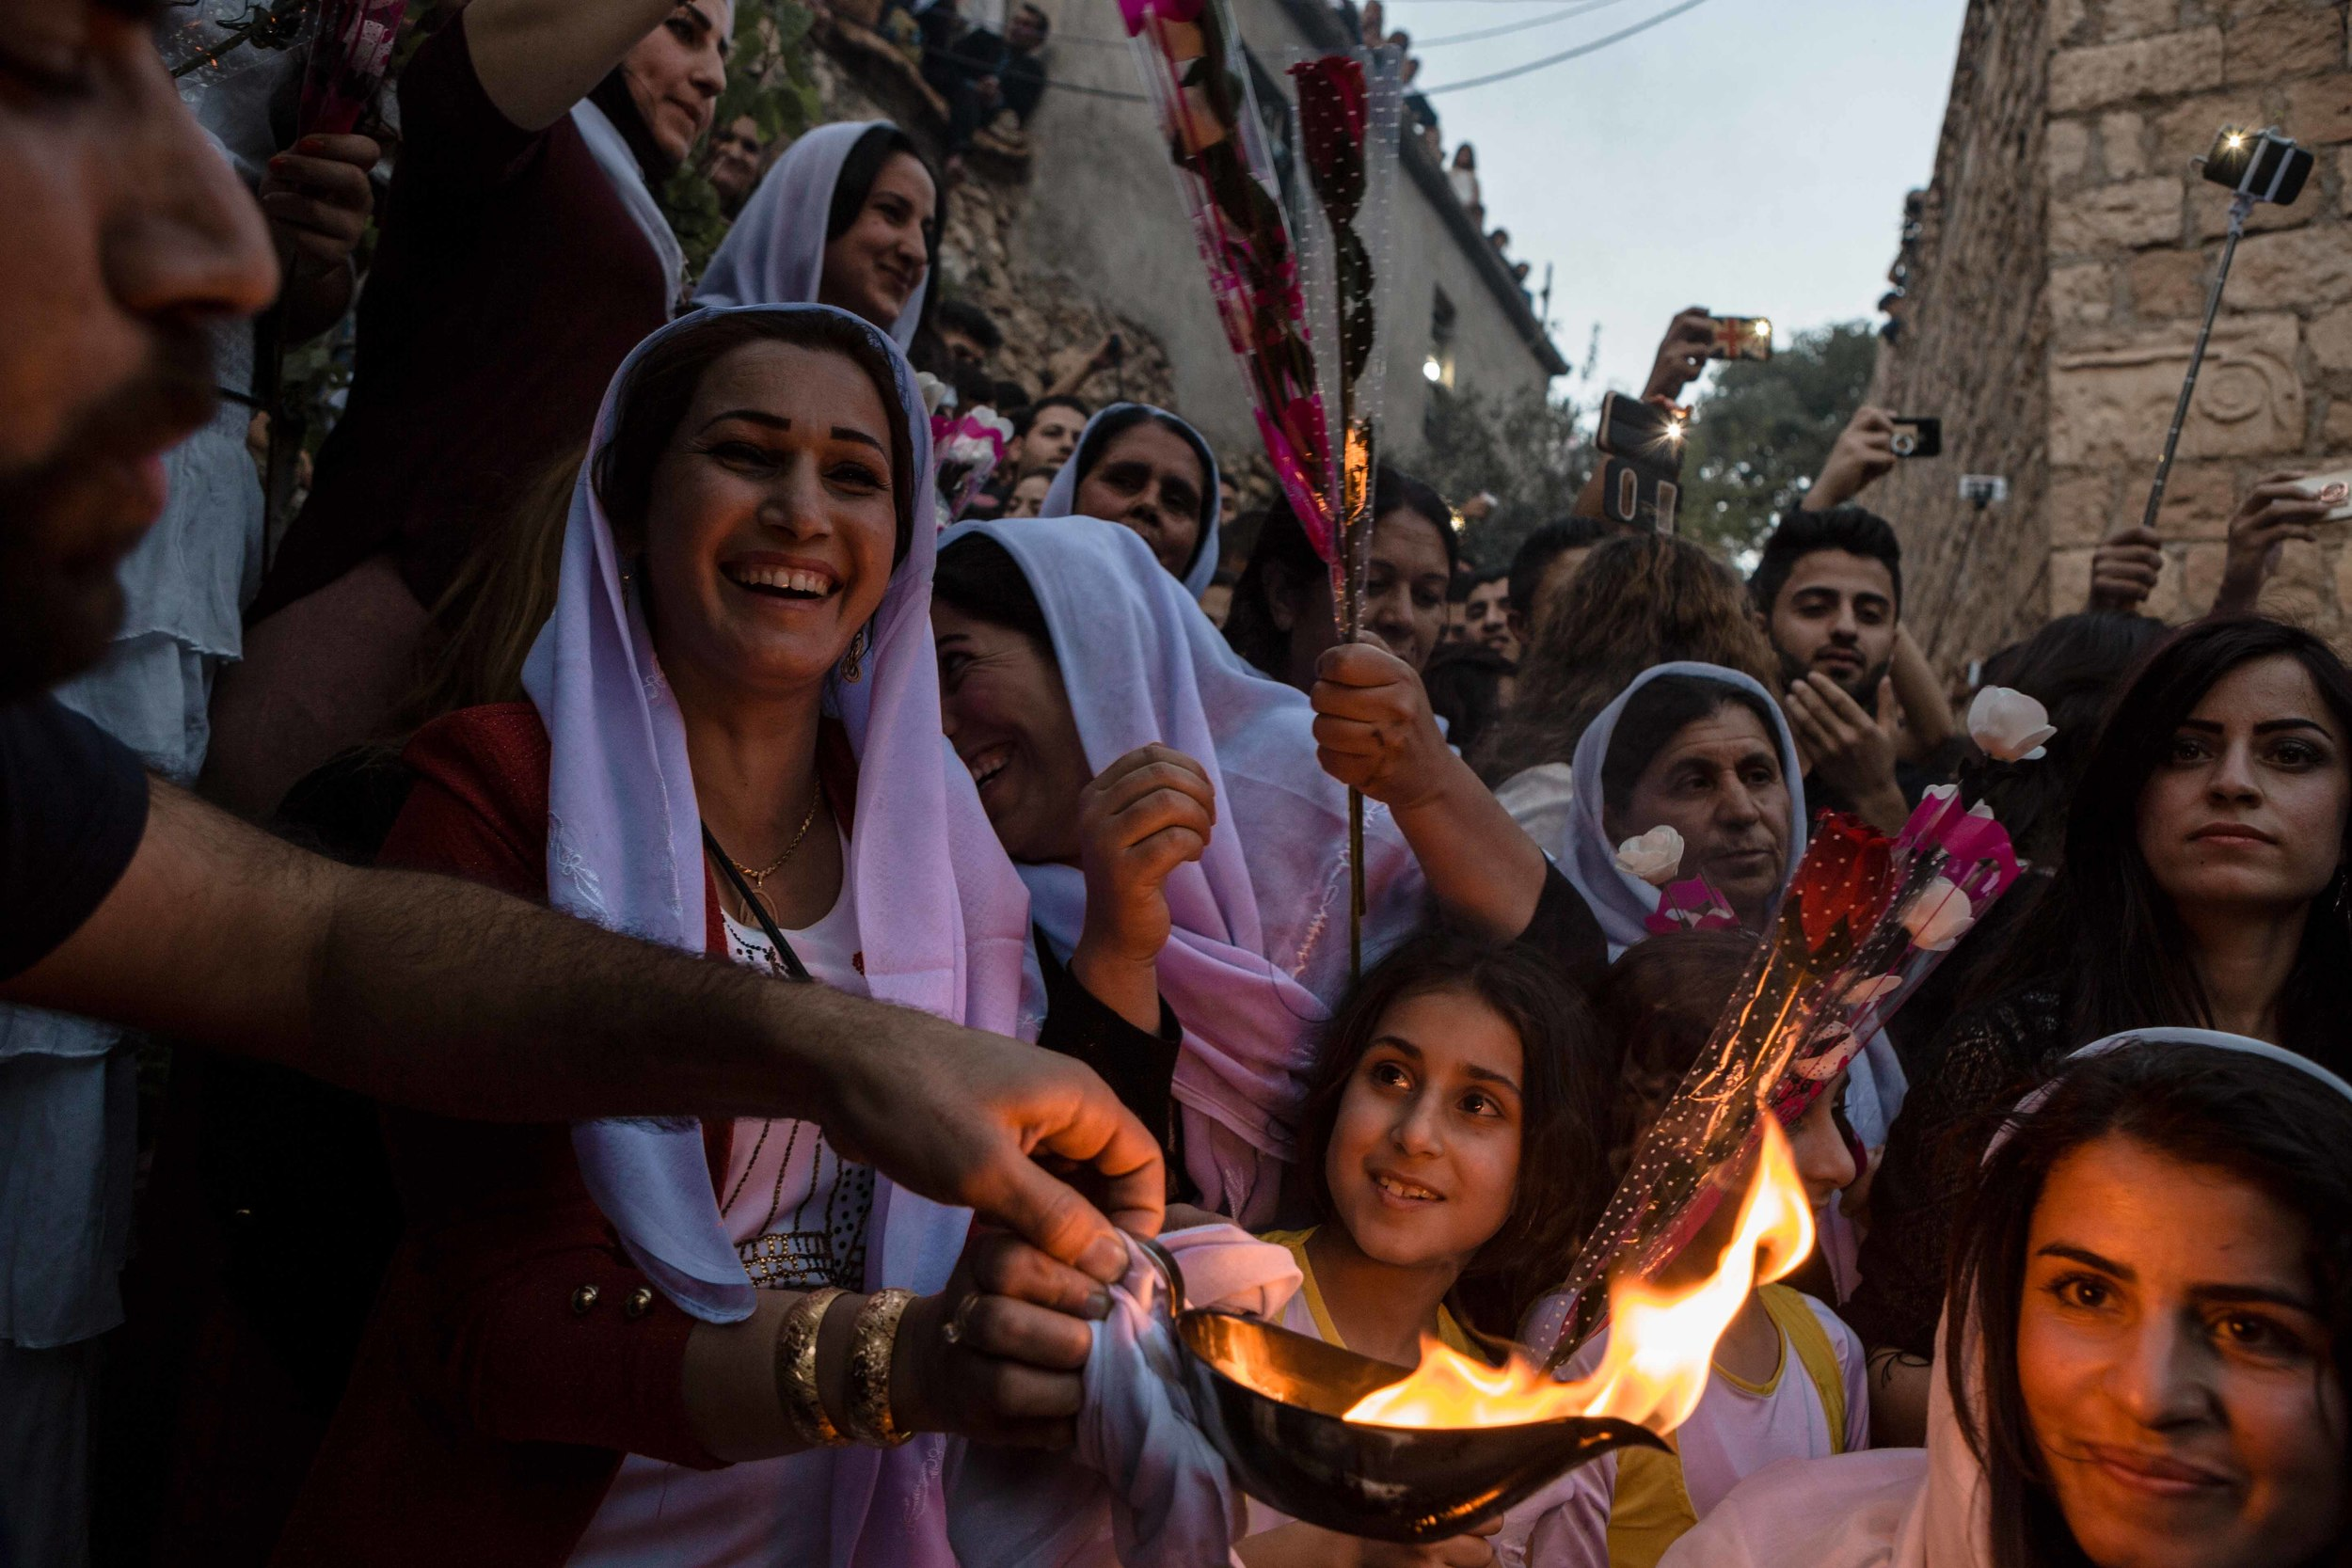 Thousands of Yazidis gather at the religions holy temple of Lalish for the lighting of the candle celebration for Yazidi new year.